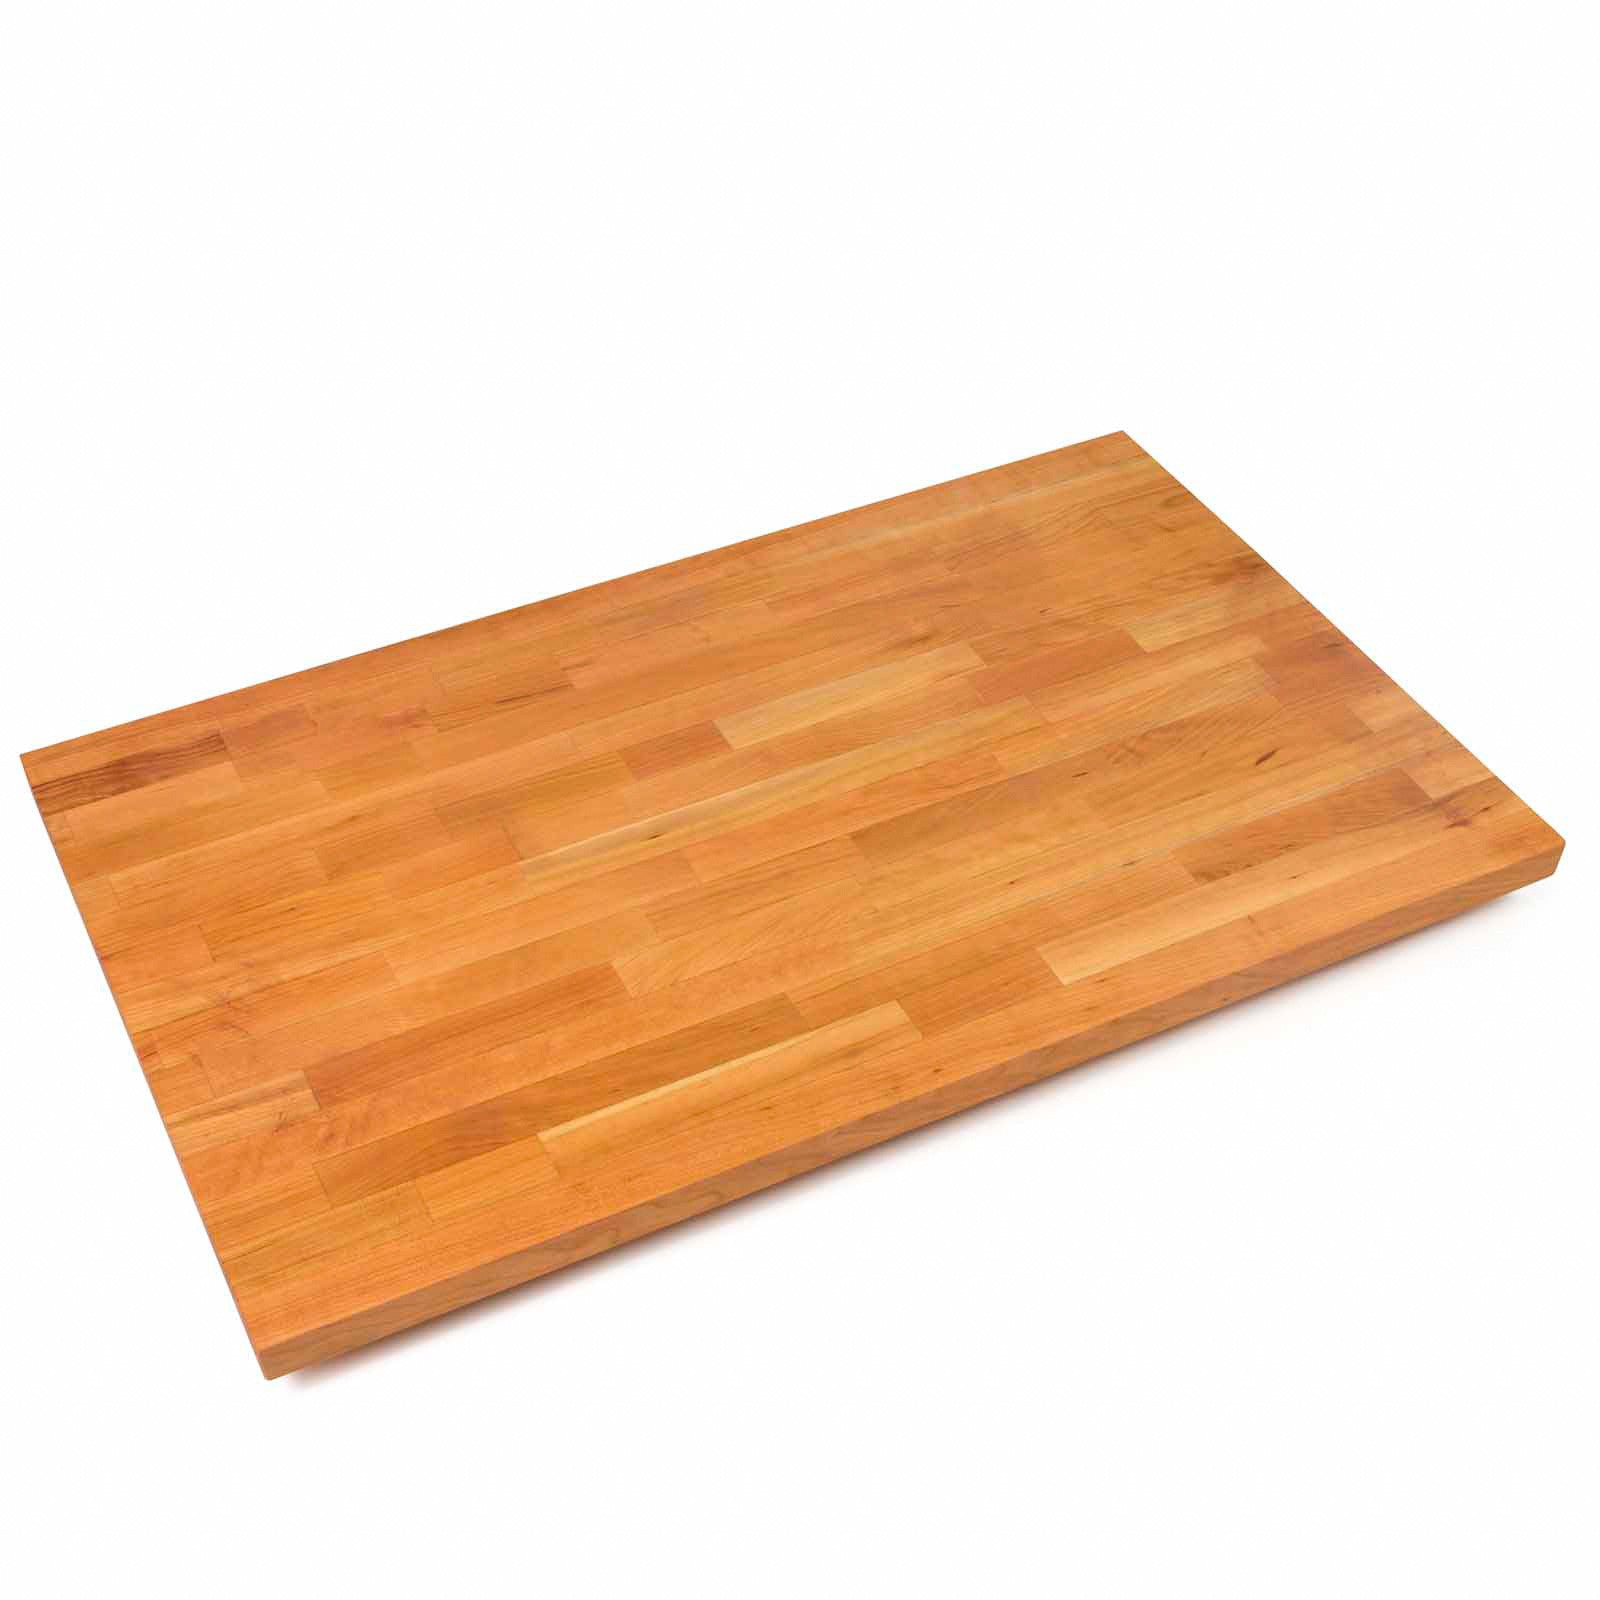 "John Boos 1 1/2"" Thick Blended Cherry Butcher Block Countertop - 42"" Wide"